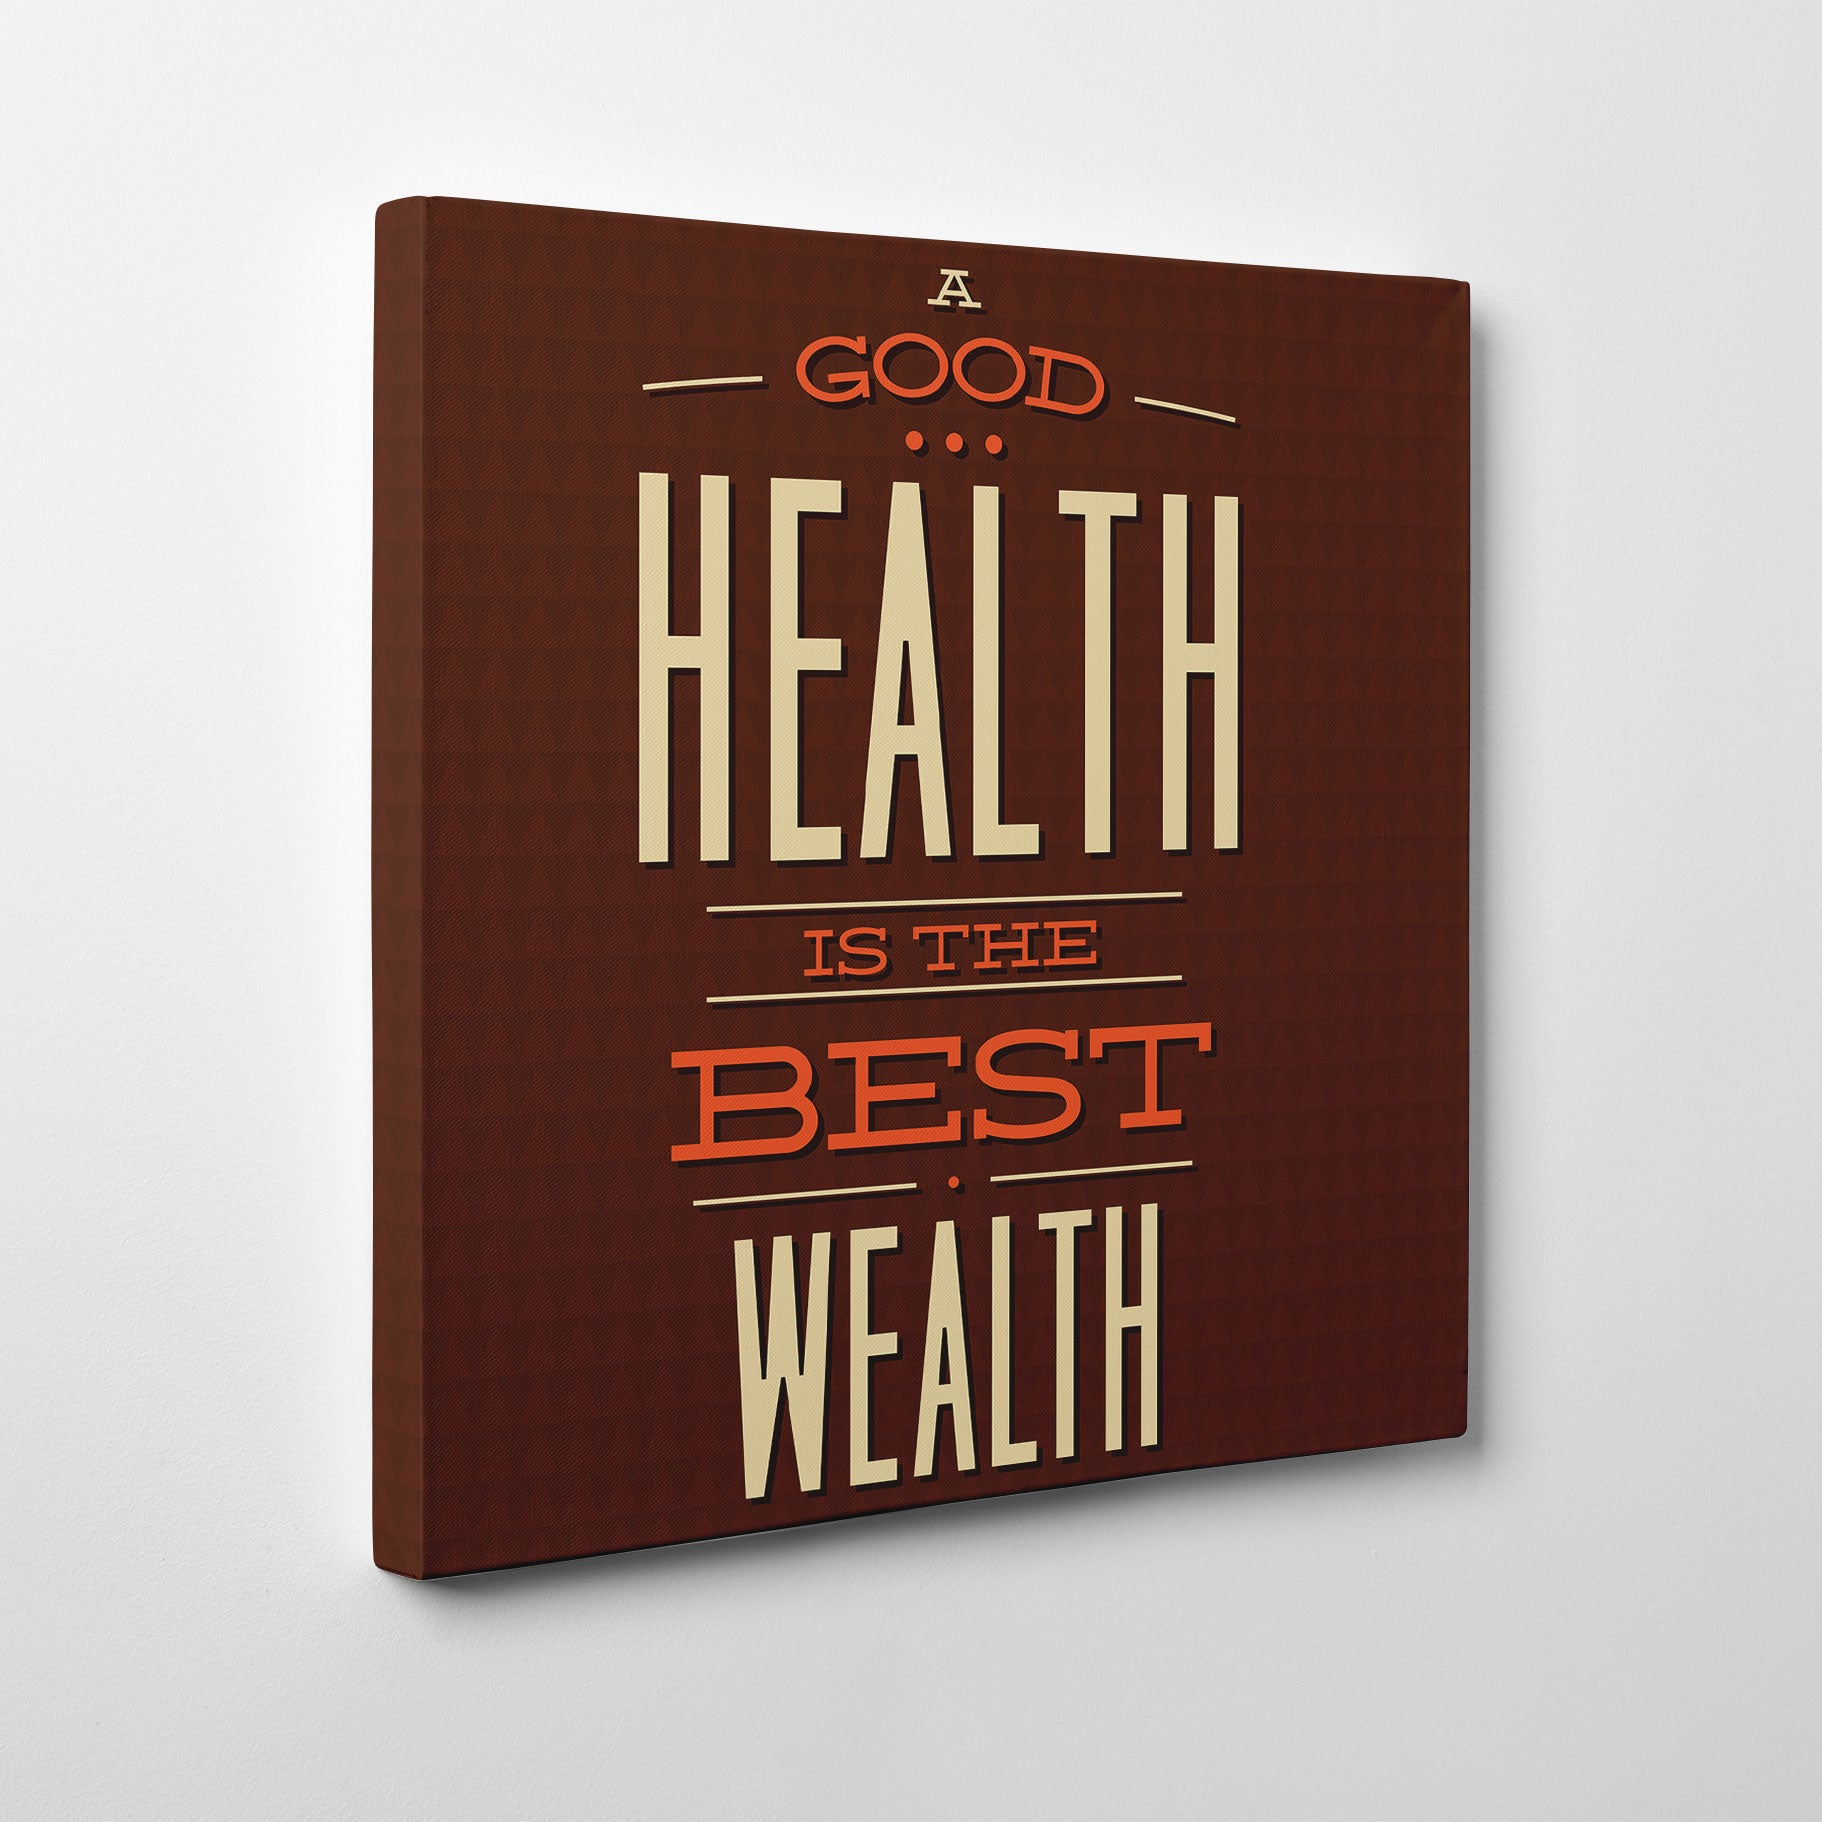 "Vintage canvas print with white and orange text ""A good health is the best wealth"" - side view."